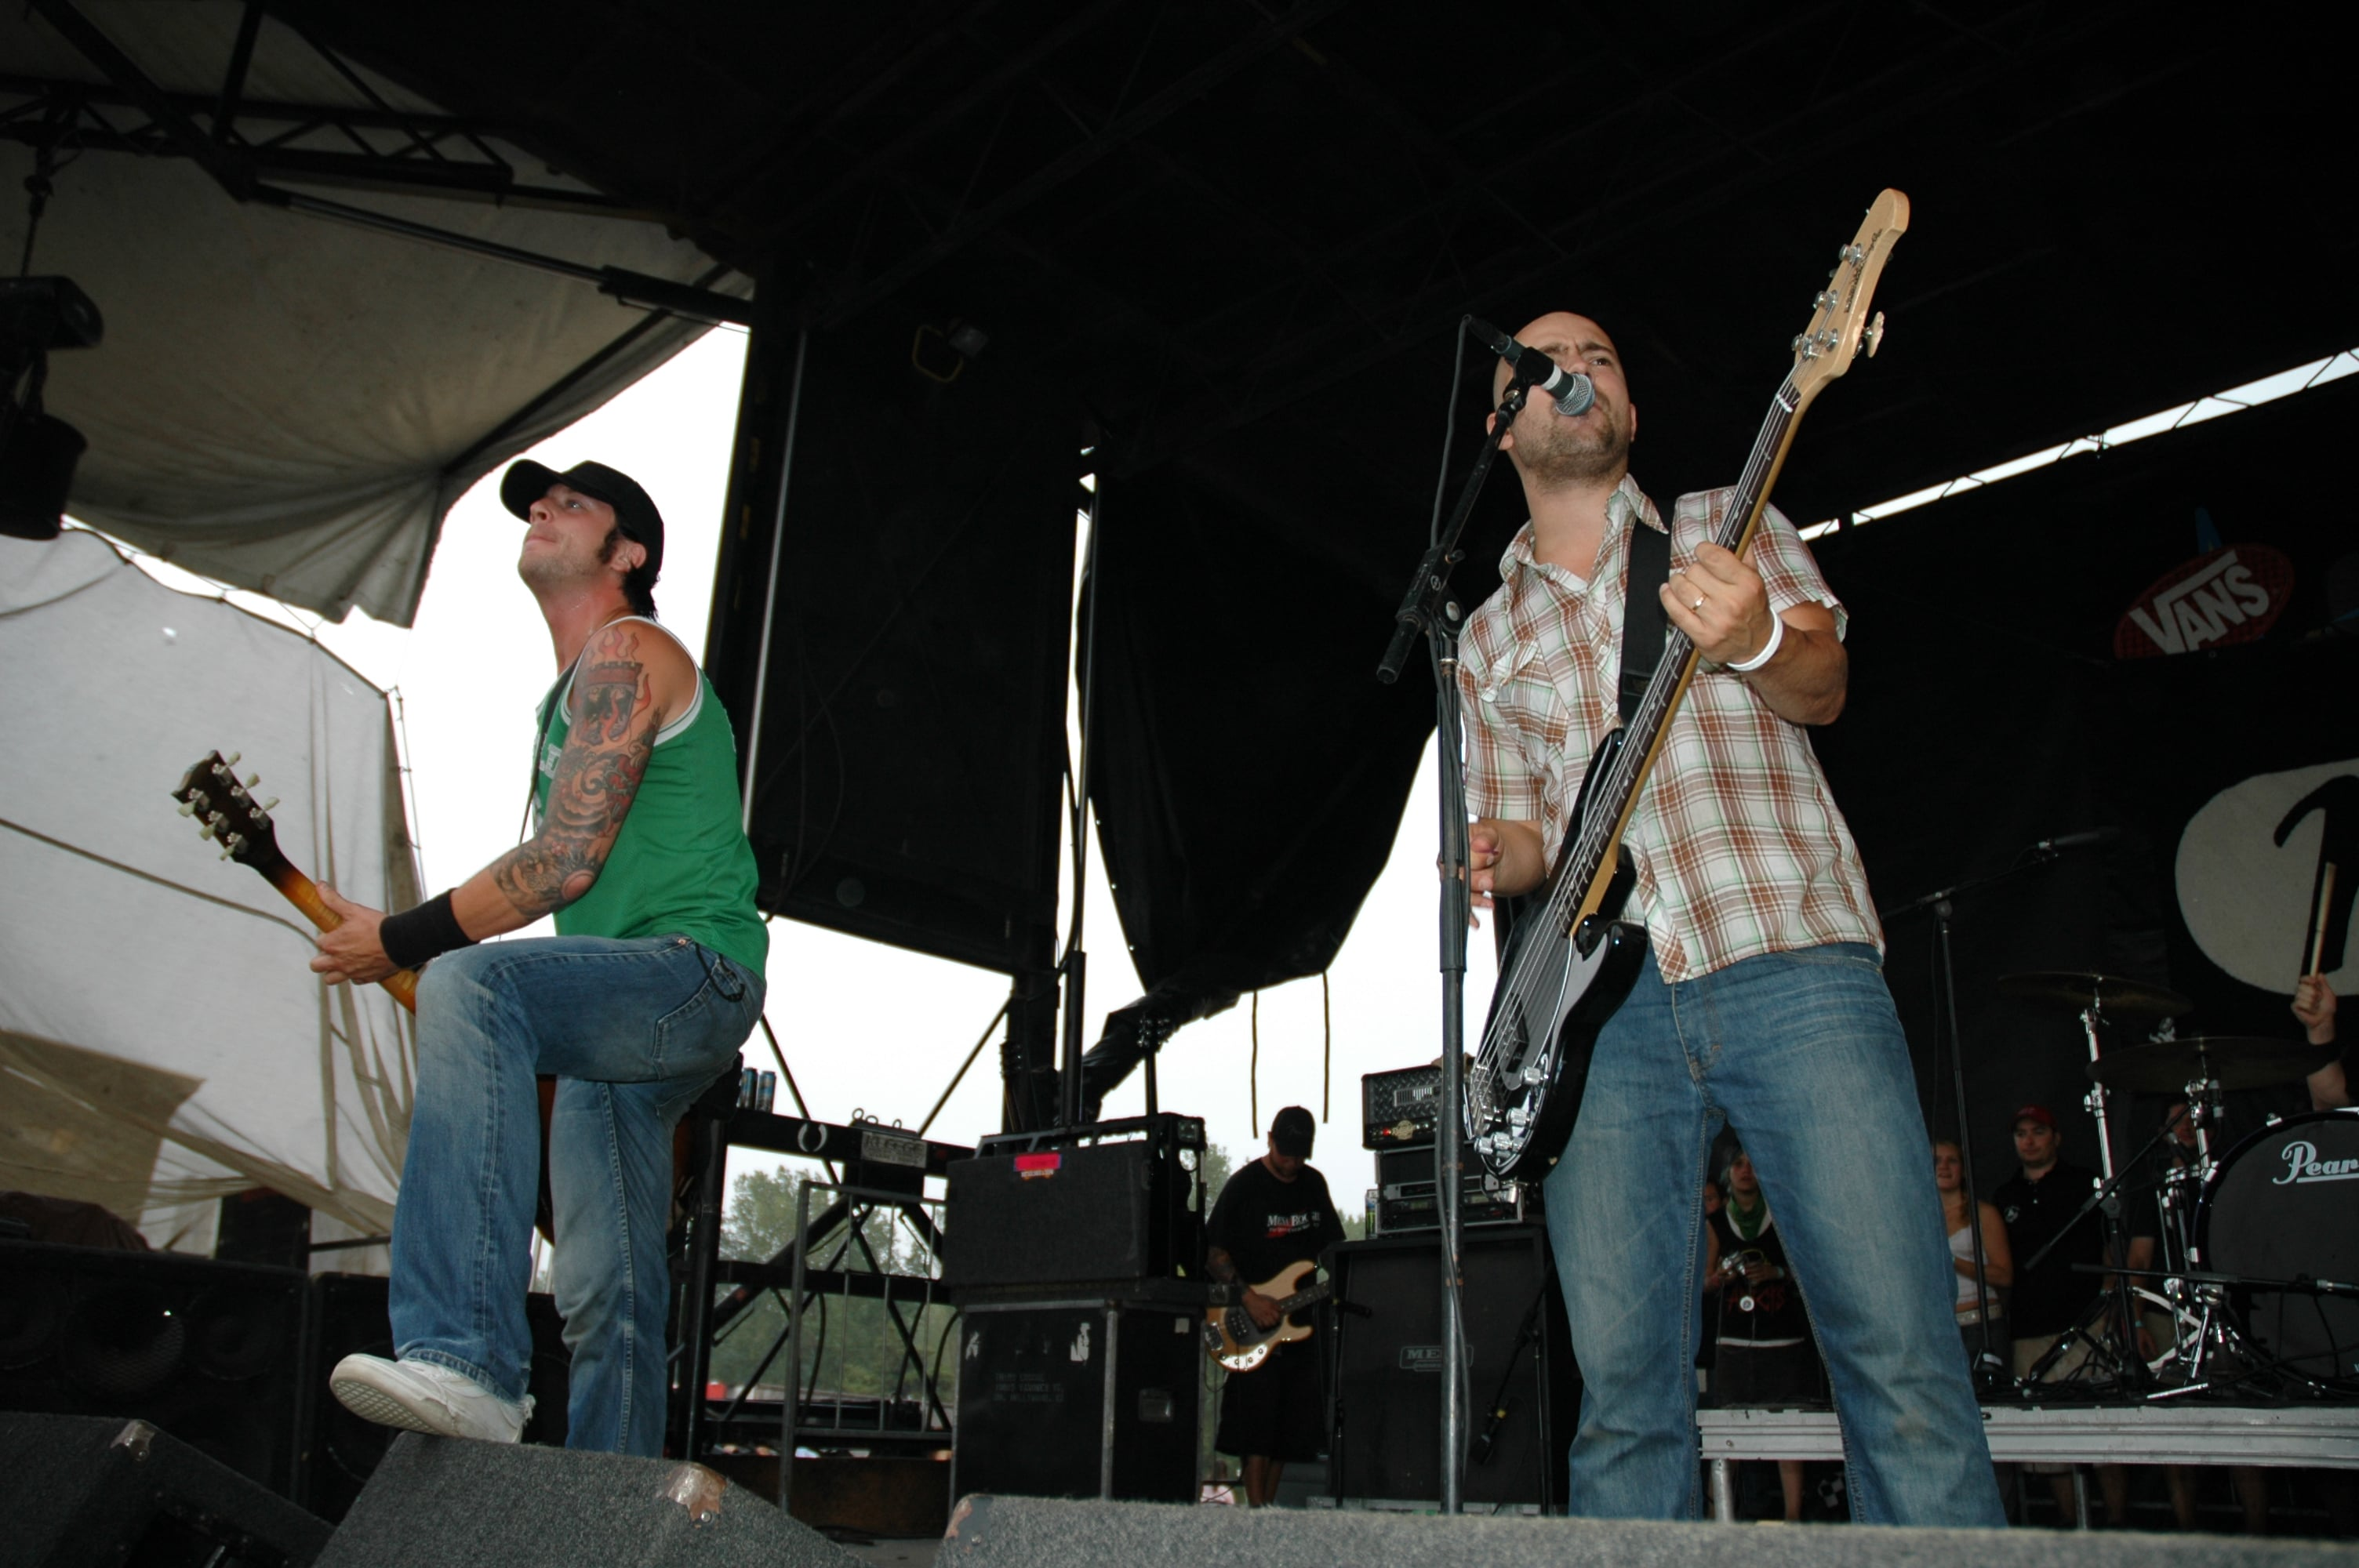 Millencolin @ Warped Tour 05, NYC - 8.12.05 (2)